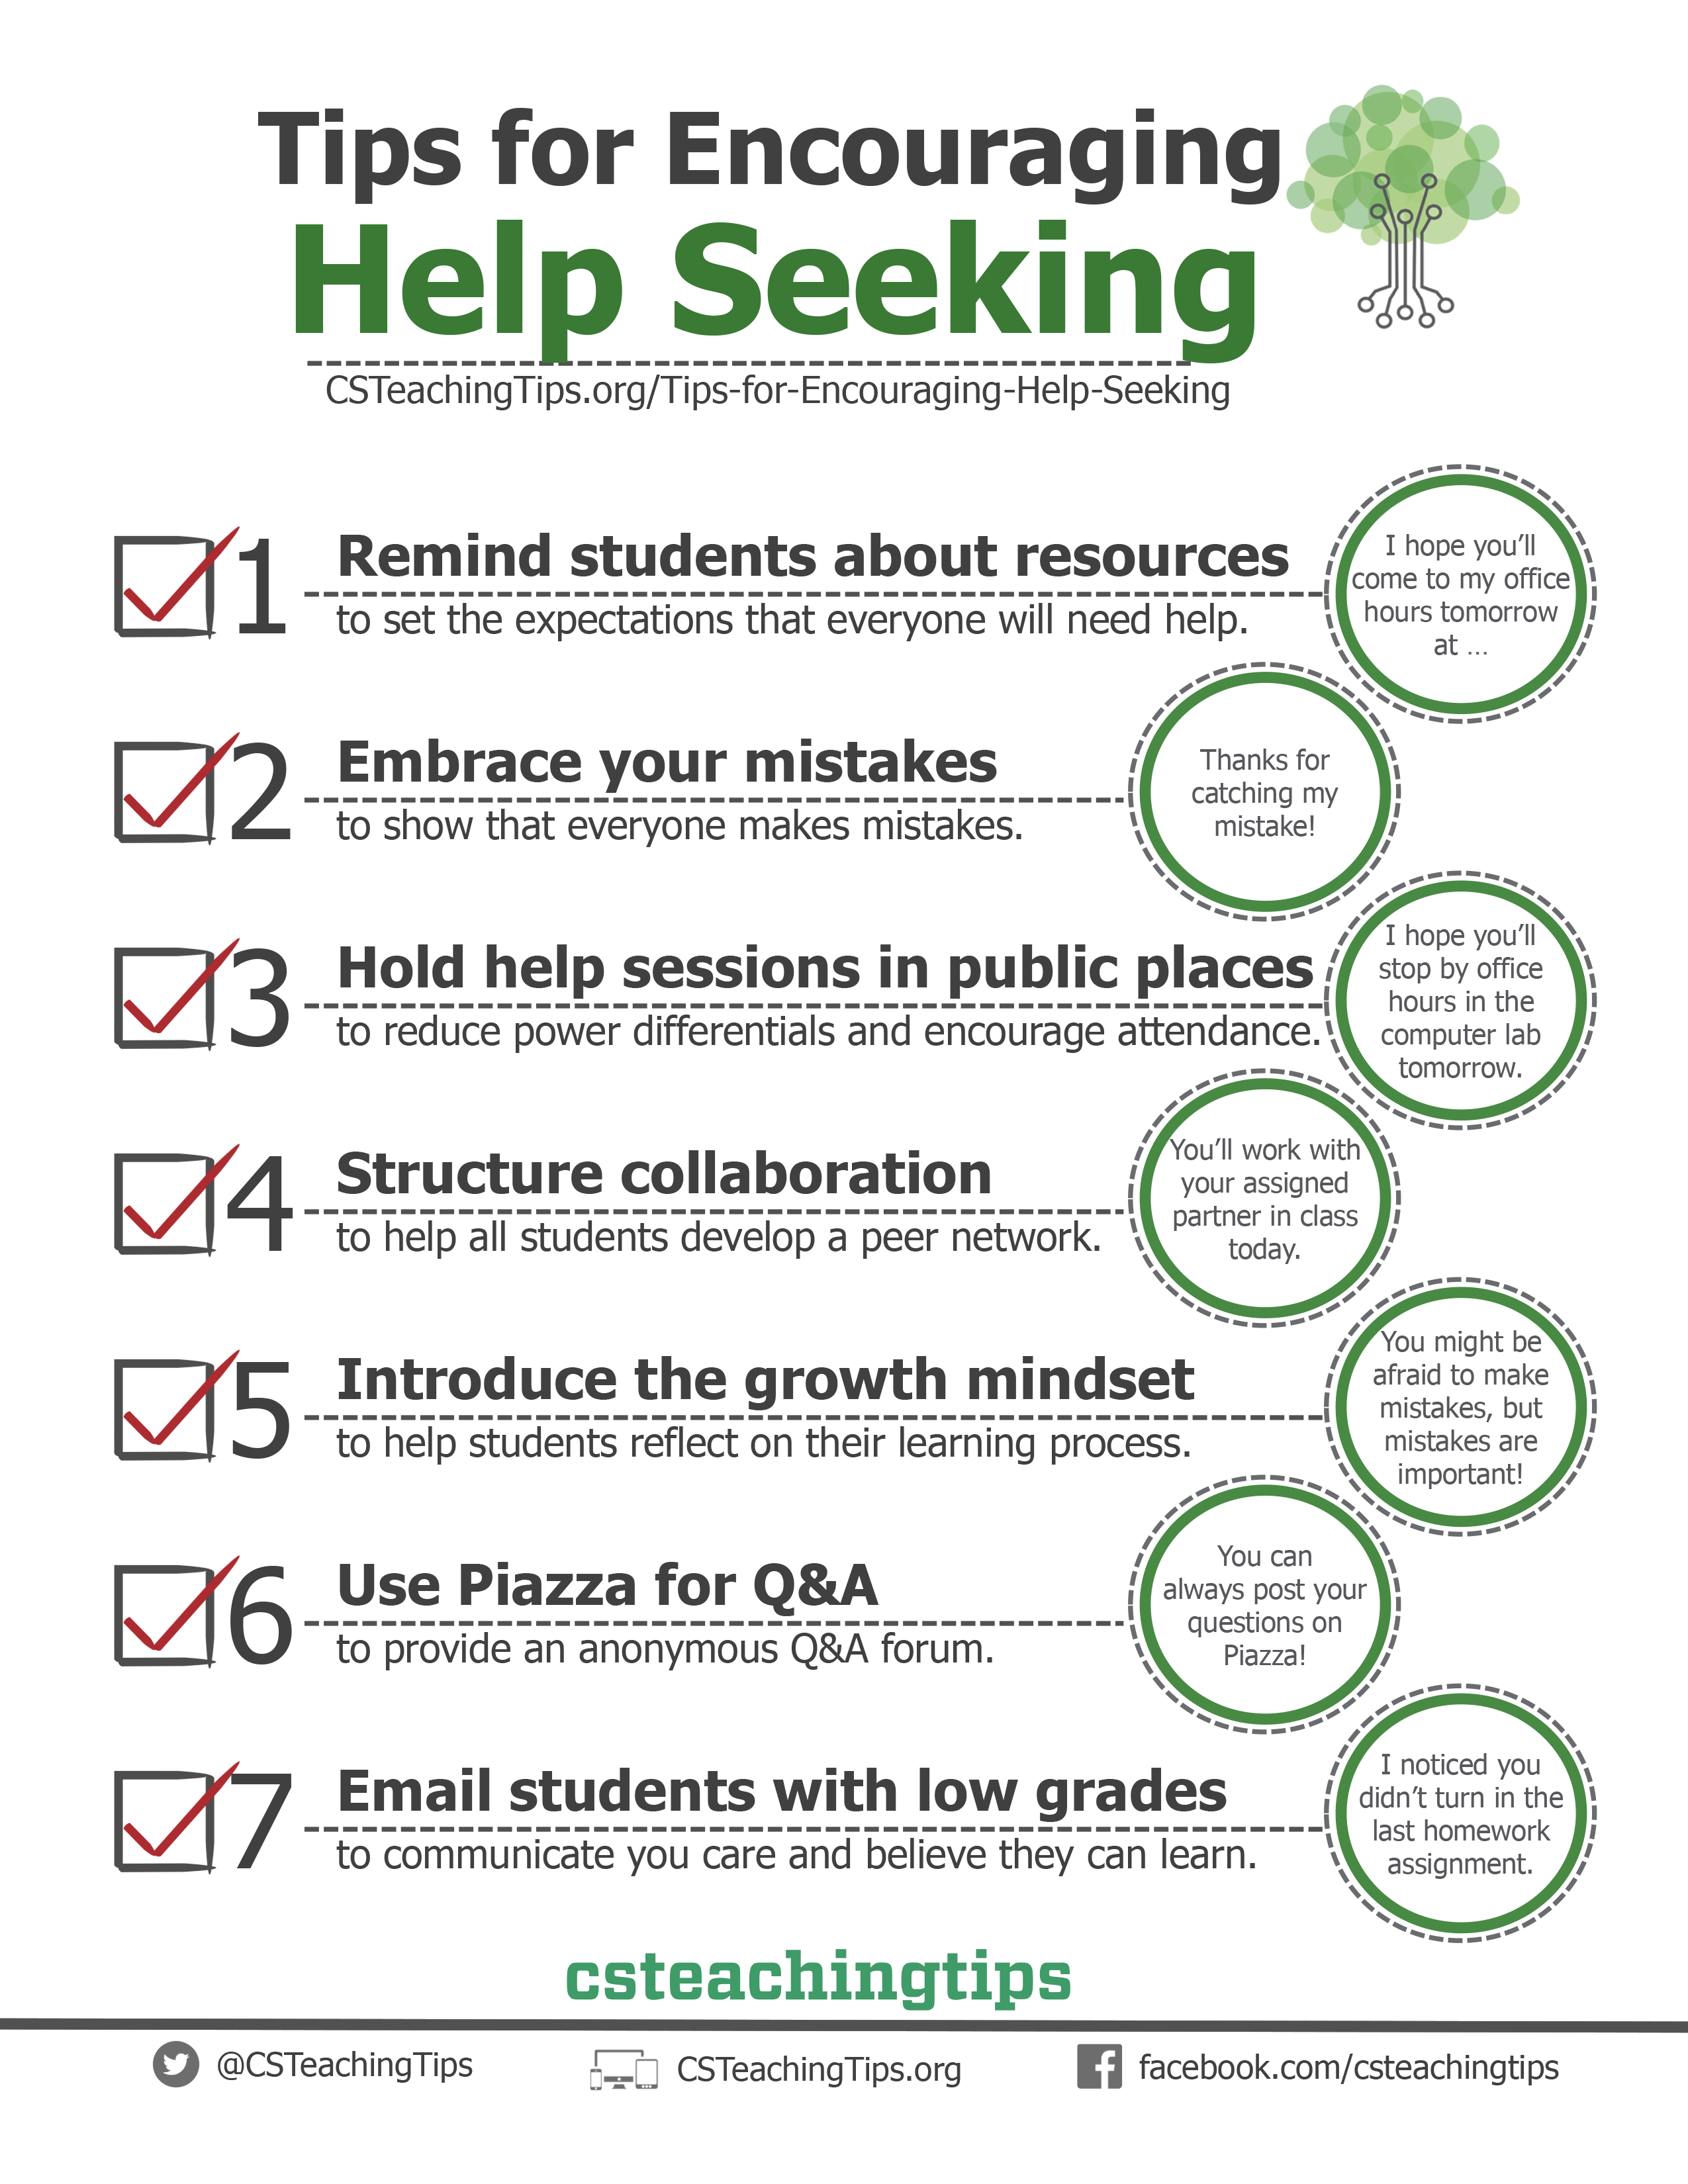 Tips to Encourage Help-Seeking